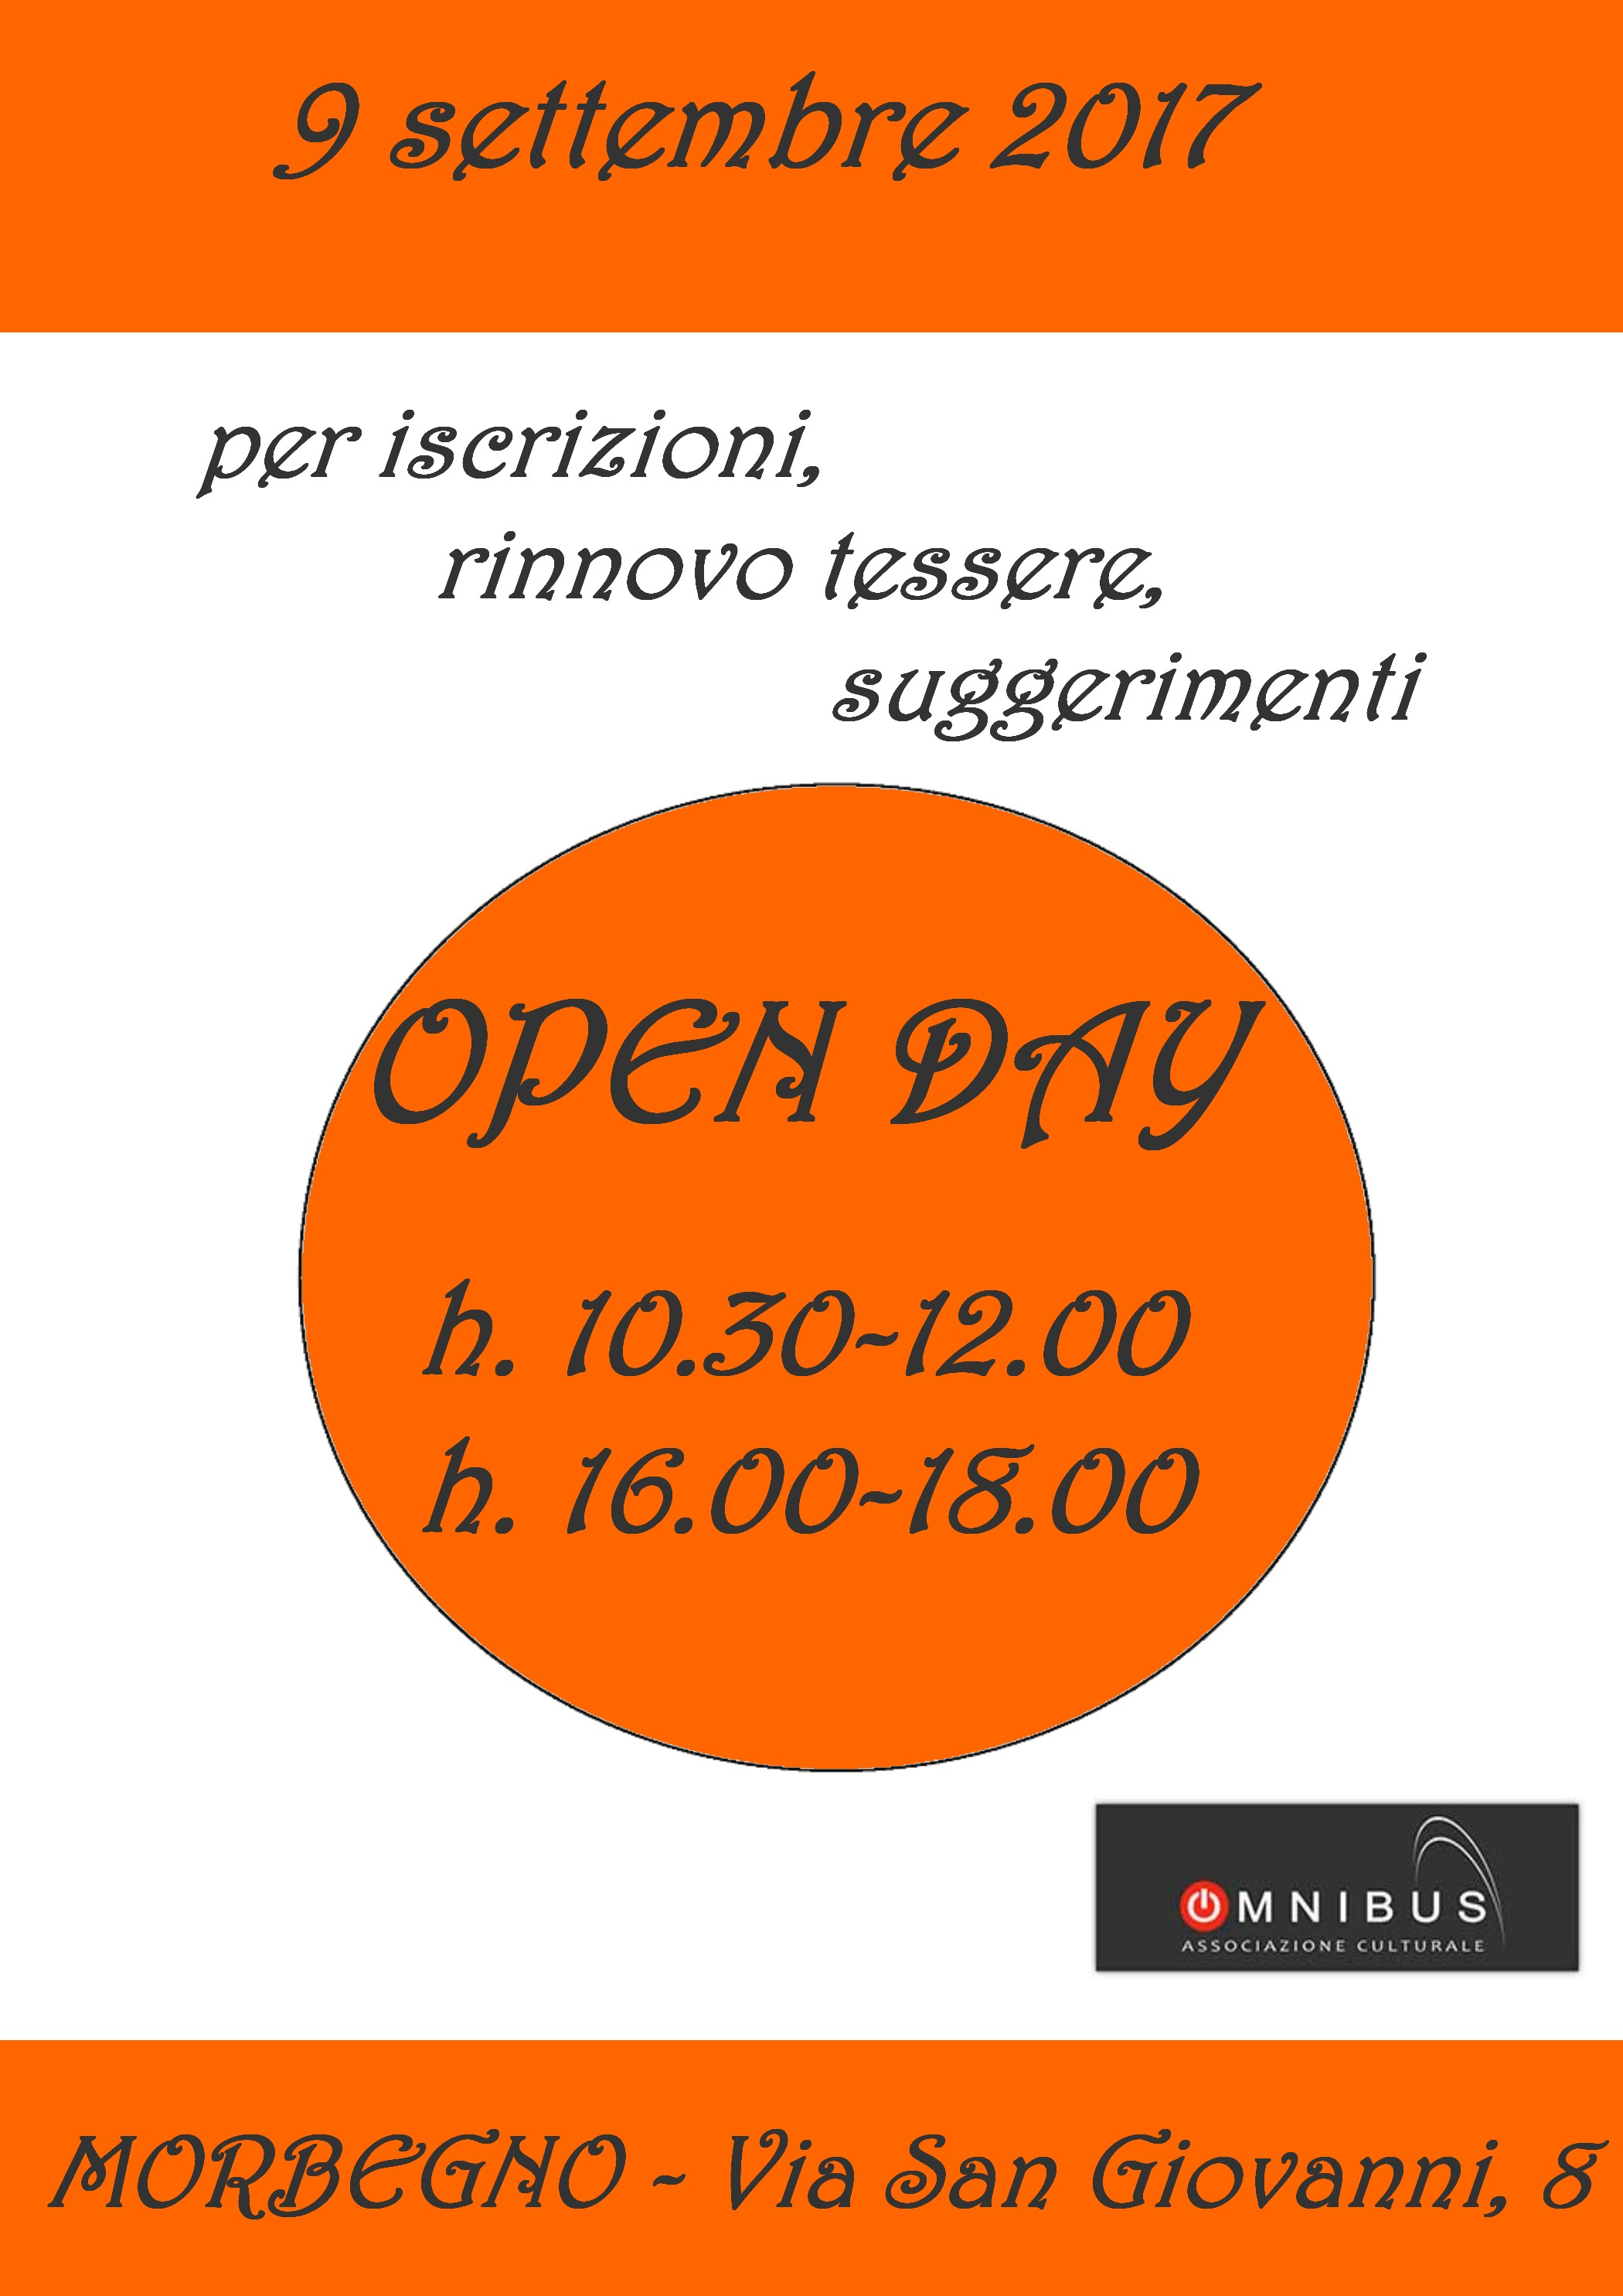 Open Day 17-18